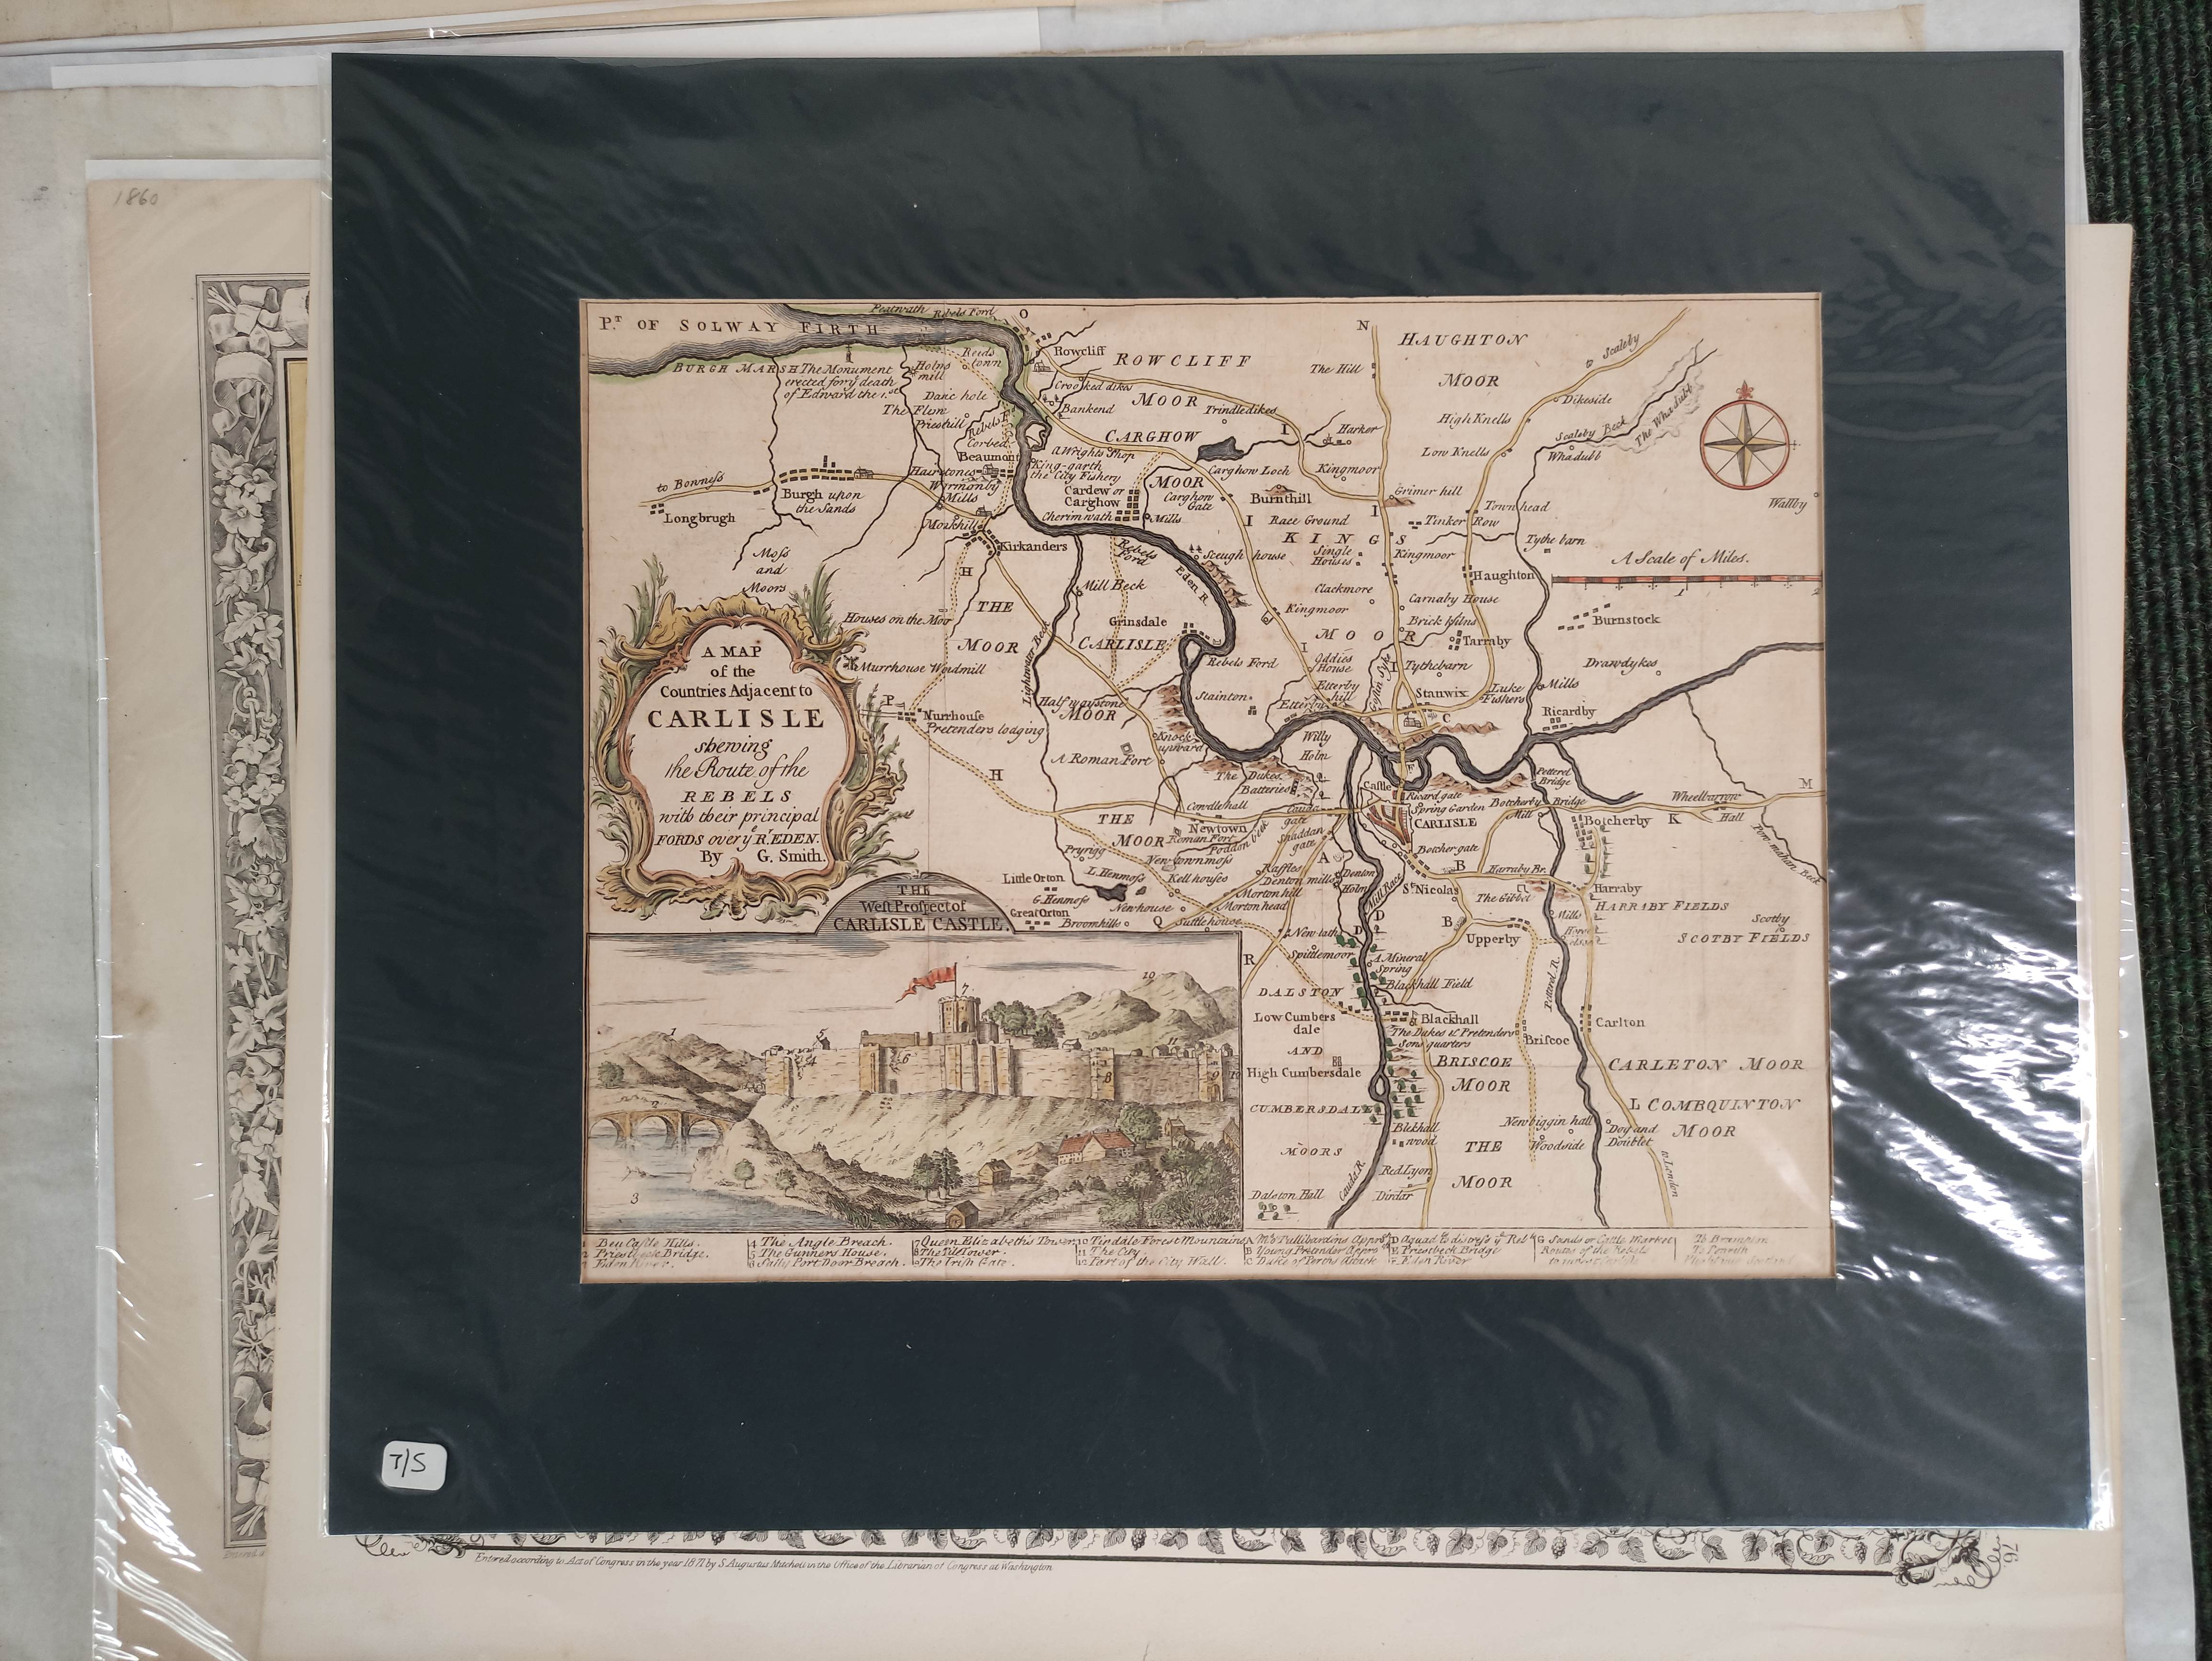 Engraved Maps.2 hand coloured eng. double maps of Ireland & Scotland by S. Augustus Mitchell, - Image 2 of 7